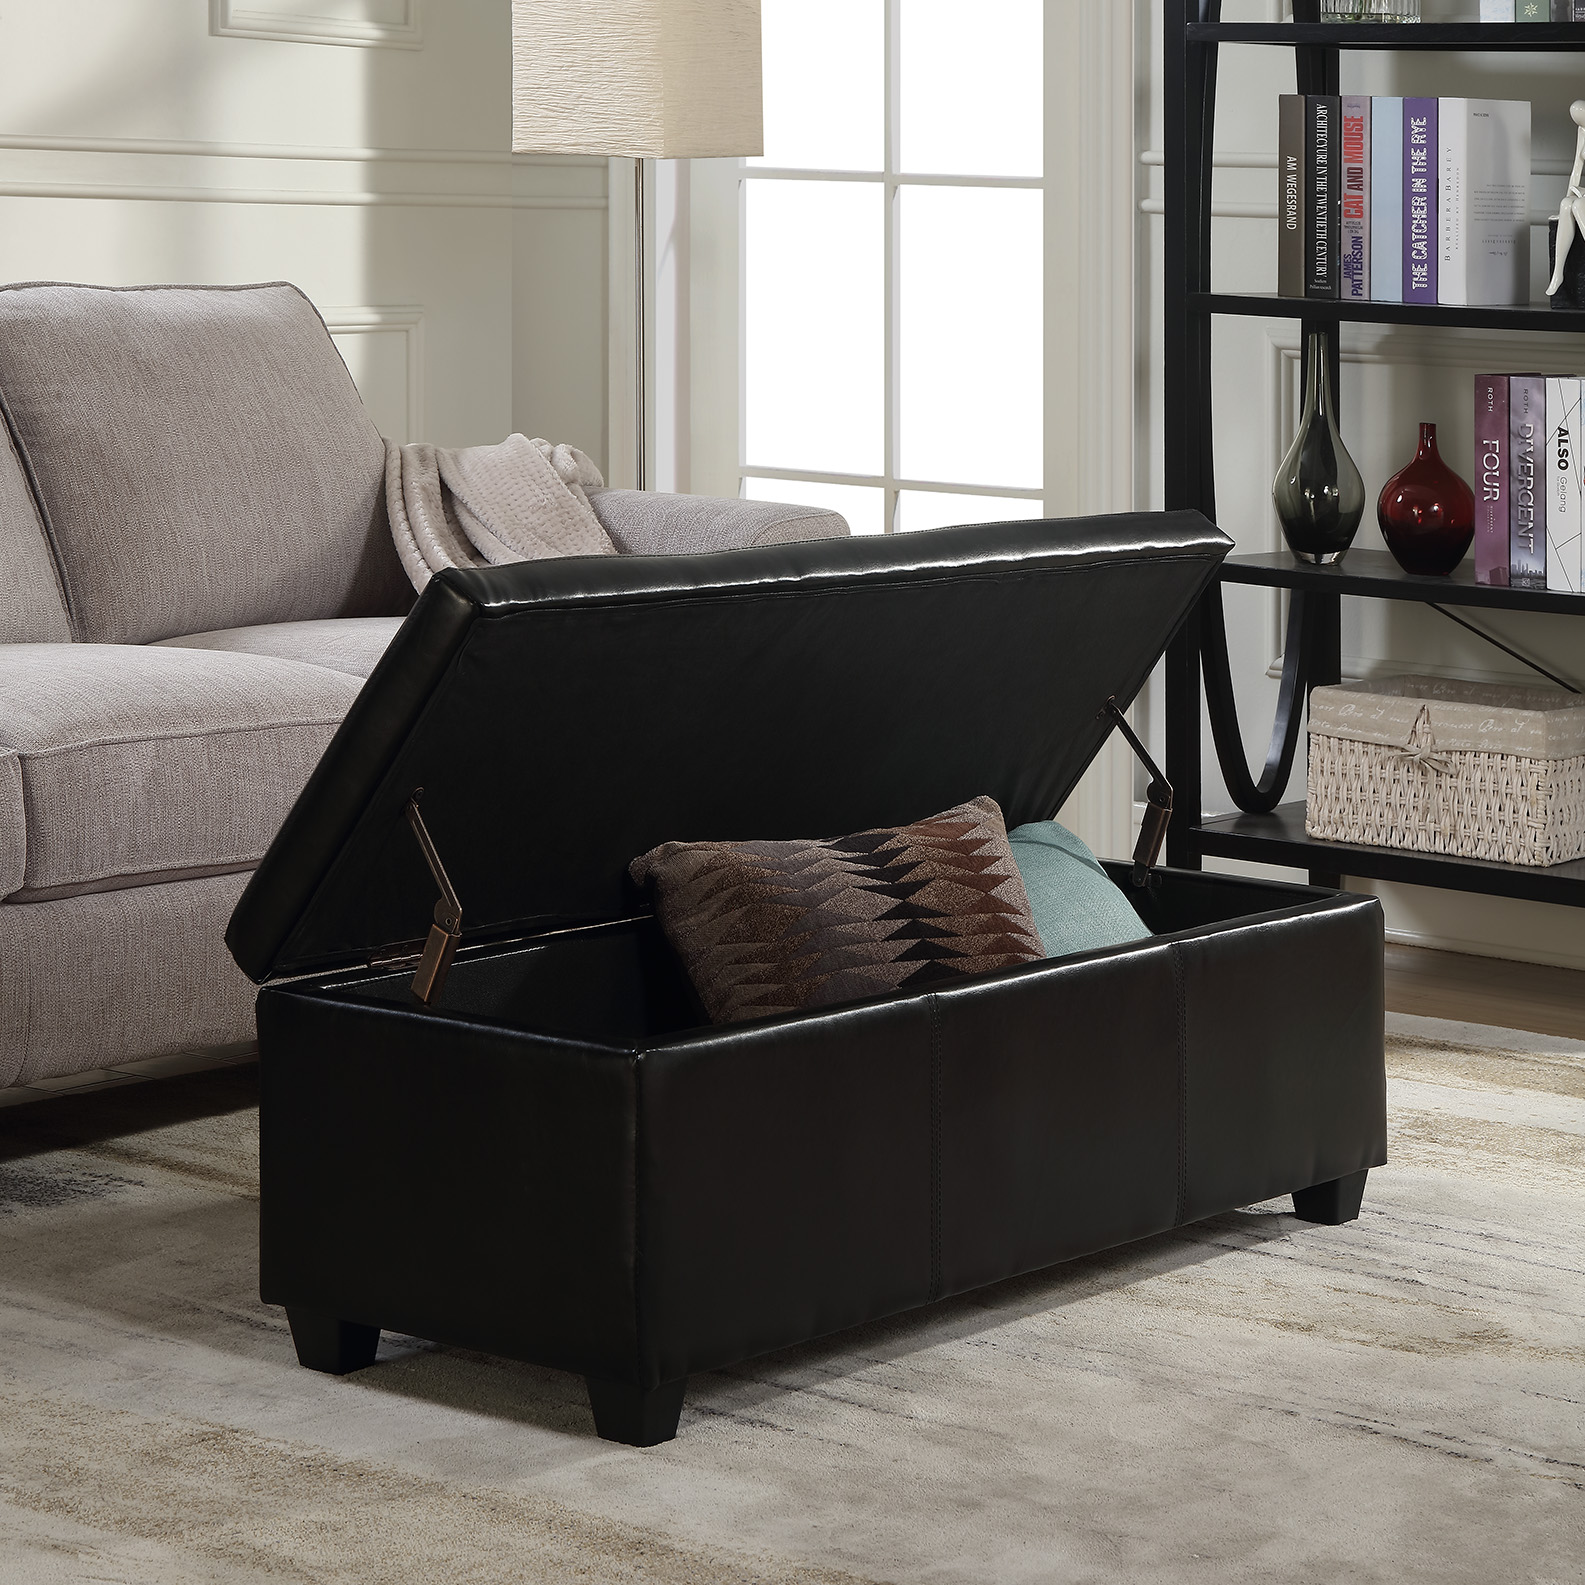 Leather Ottomans With Storage